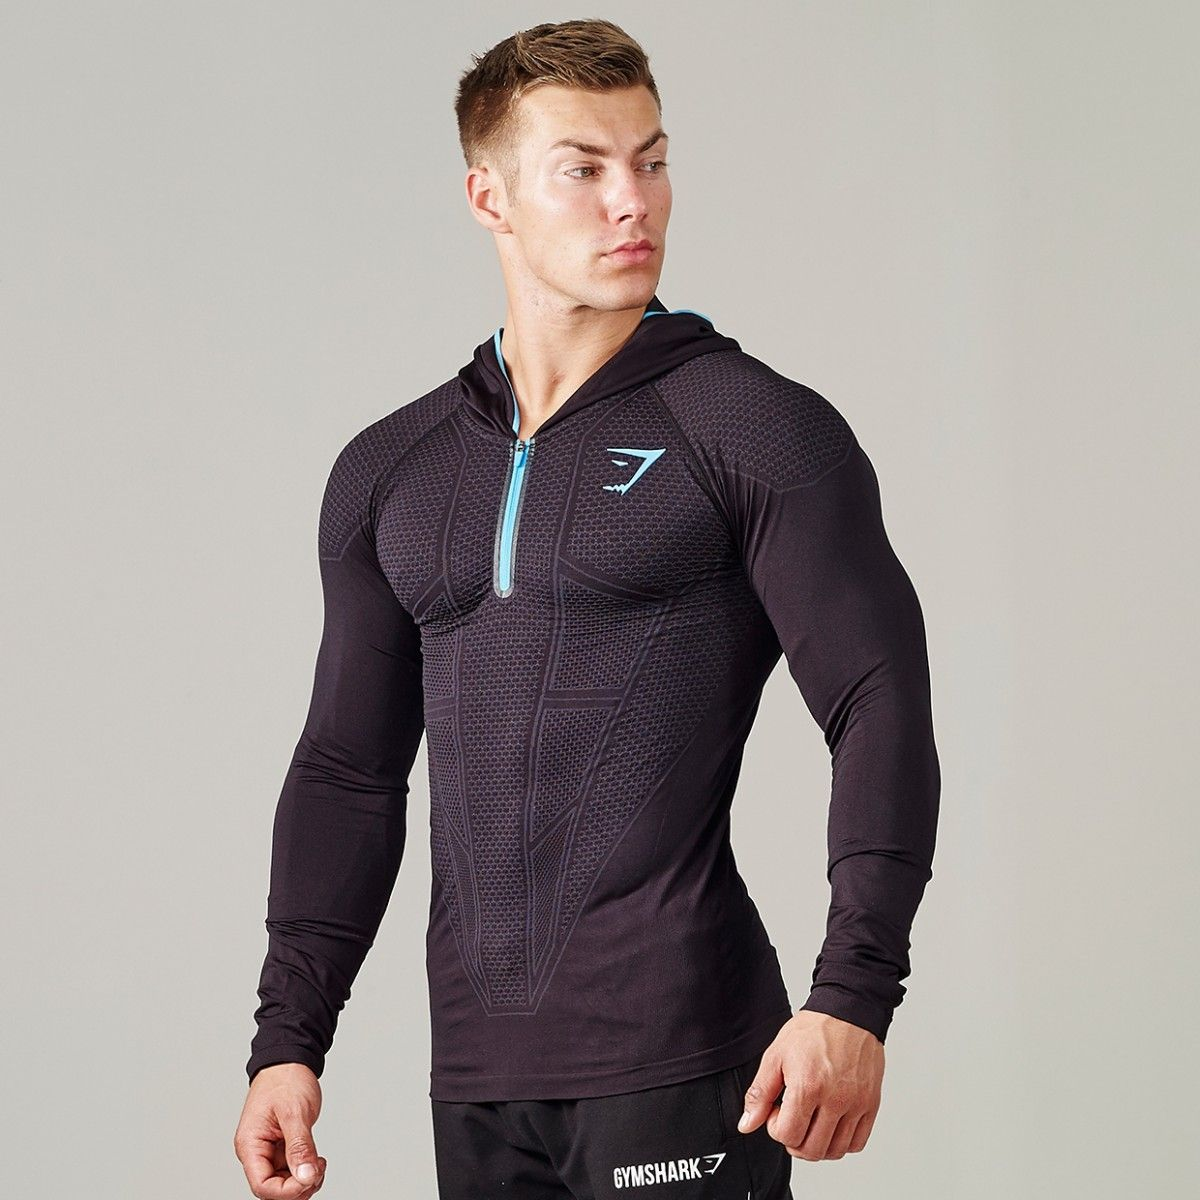 5f65b568207b0 Gymshark Onyx Seamless Hooded Top - Black - New Releases - Featured - Mens